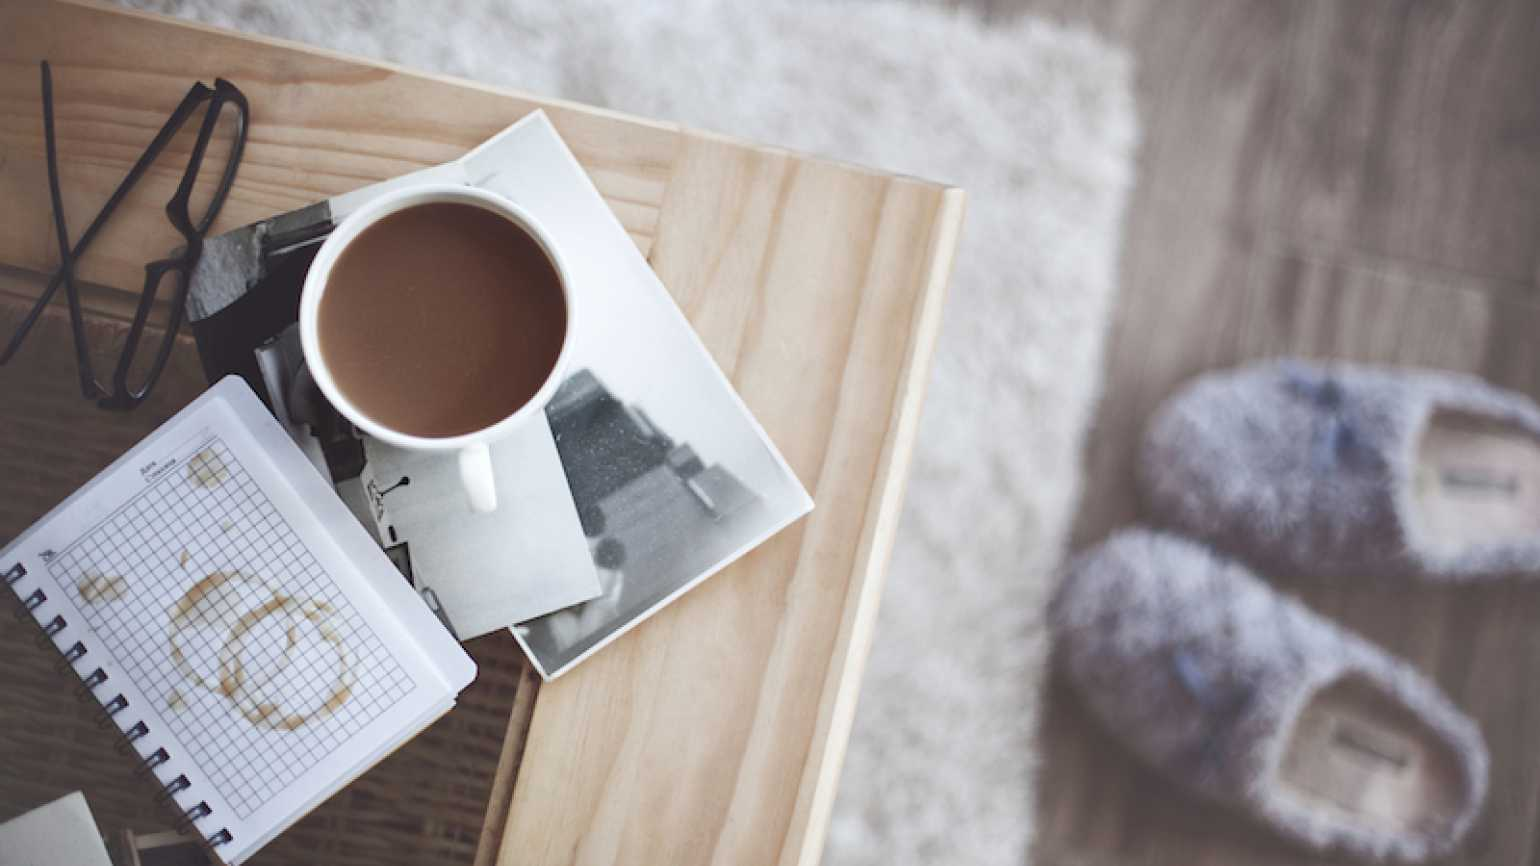 Coffee cup and a sacred moment. Photo by Alena Ozerova, Shutterstock.